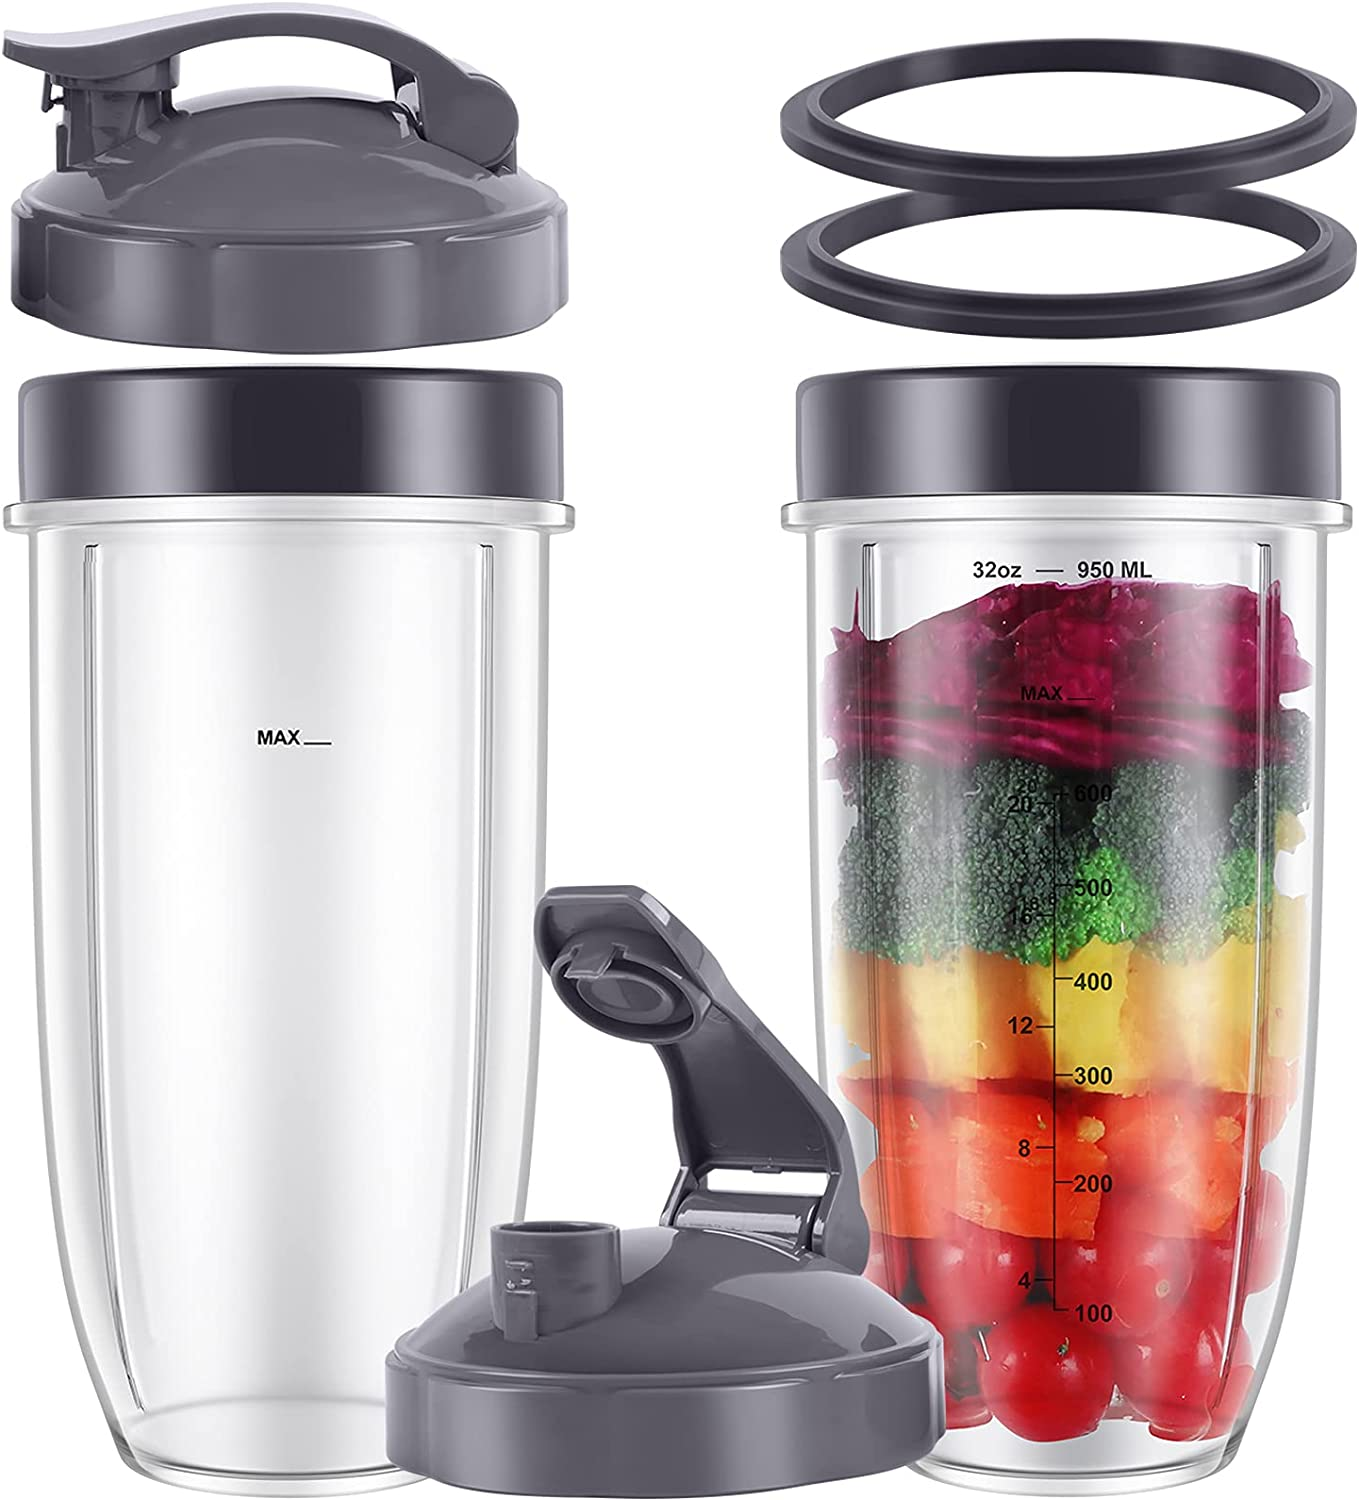 8-piece NutriBullet Blender Cups 32oz Cups with Flip-Top To-Go-Lids and Twist-on Lip Rings and Rubber Gaskets Compatible with NutriBullet 900W 600W Blenders Replacement Parts for NutriBullet